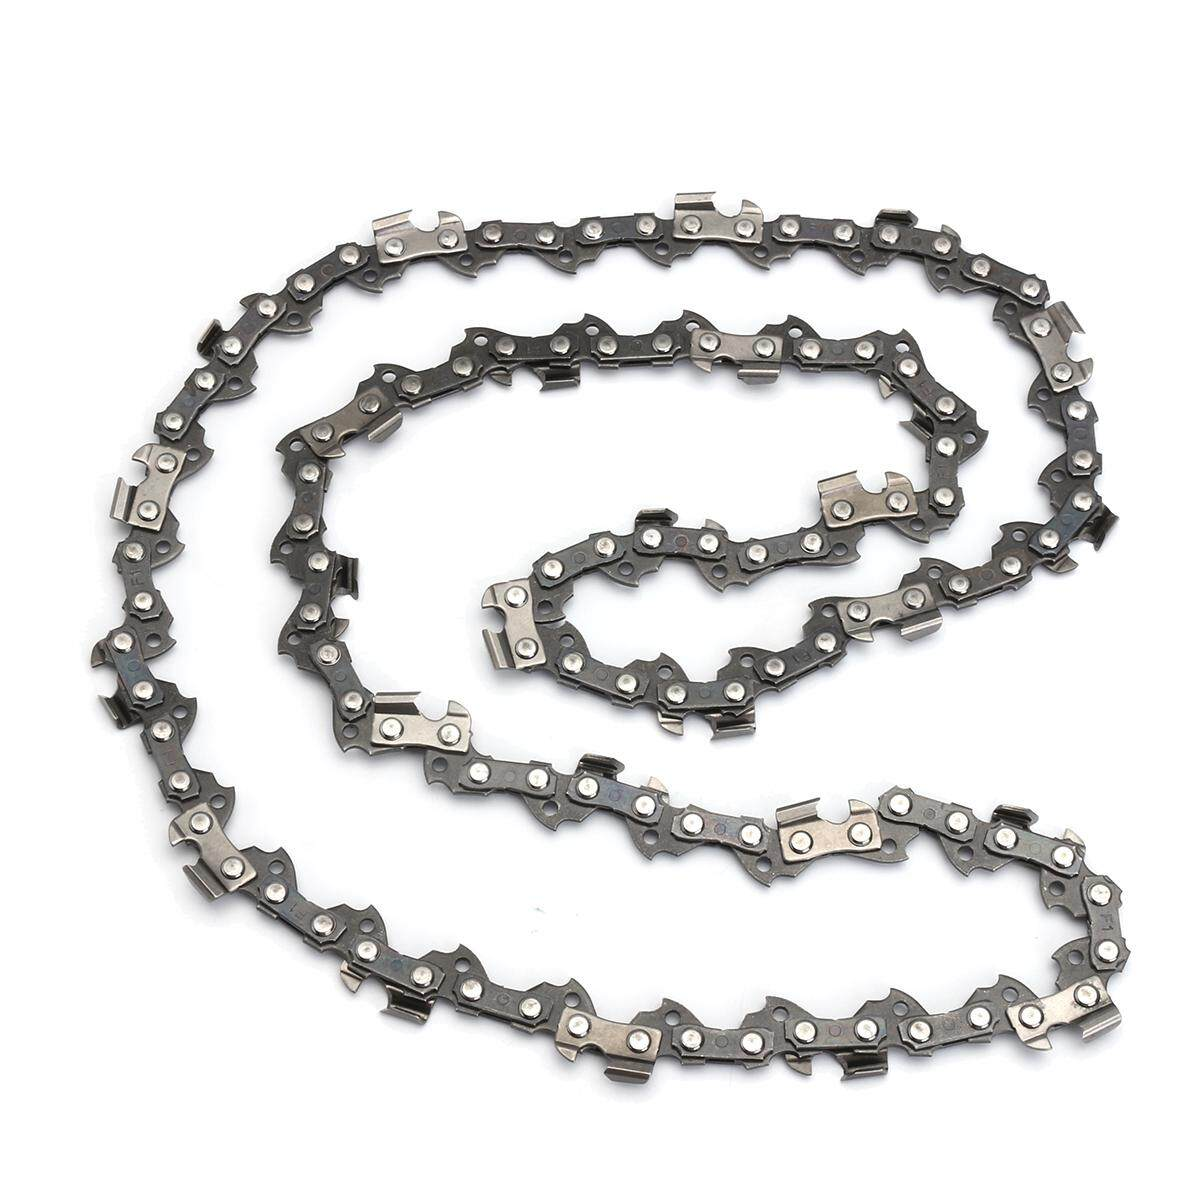 Buy Sell Cheapest Stihl Ms 381 Best Quality Product Deals 382 Mesin Potong Kayu Chainsaw 25 Inch 5pcs Semi Chisel Chains 3 8lp 043 55dl 16